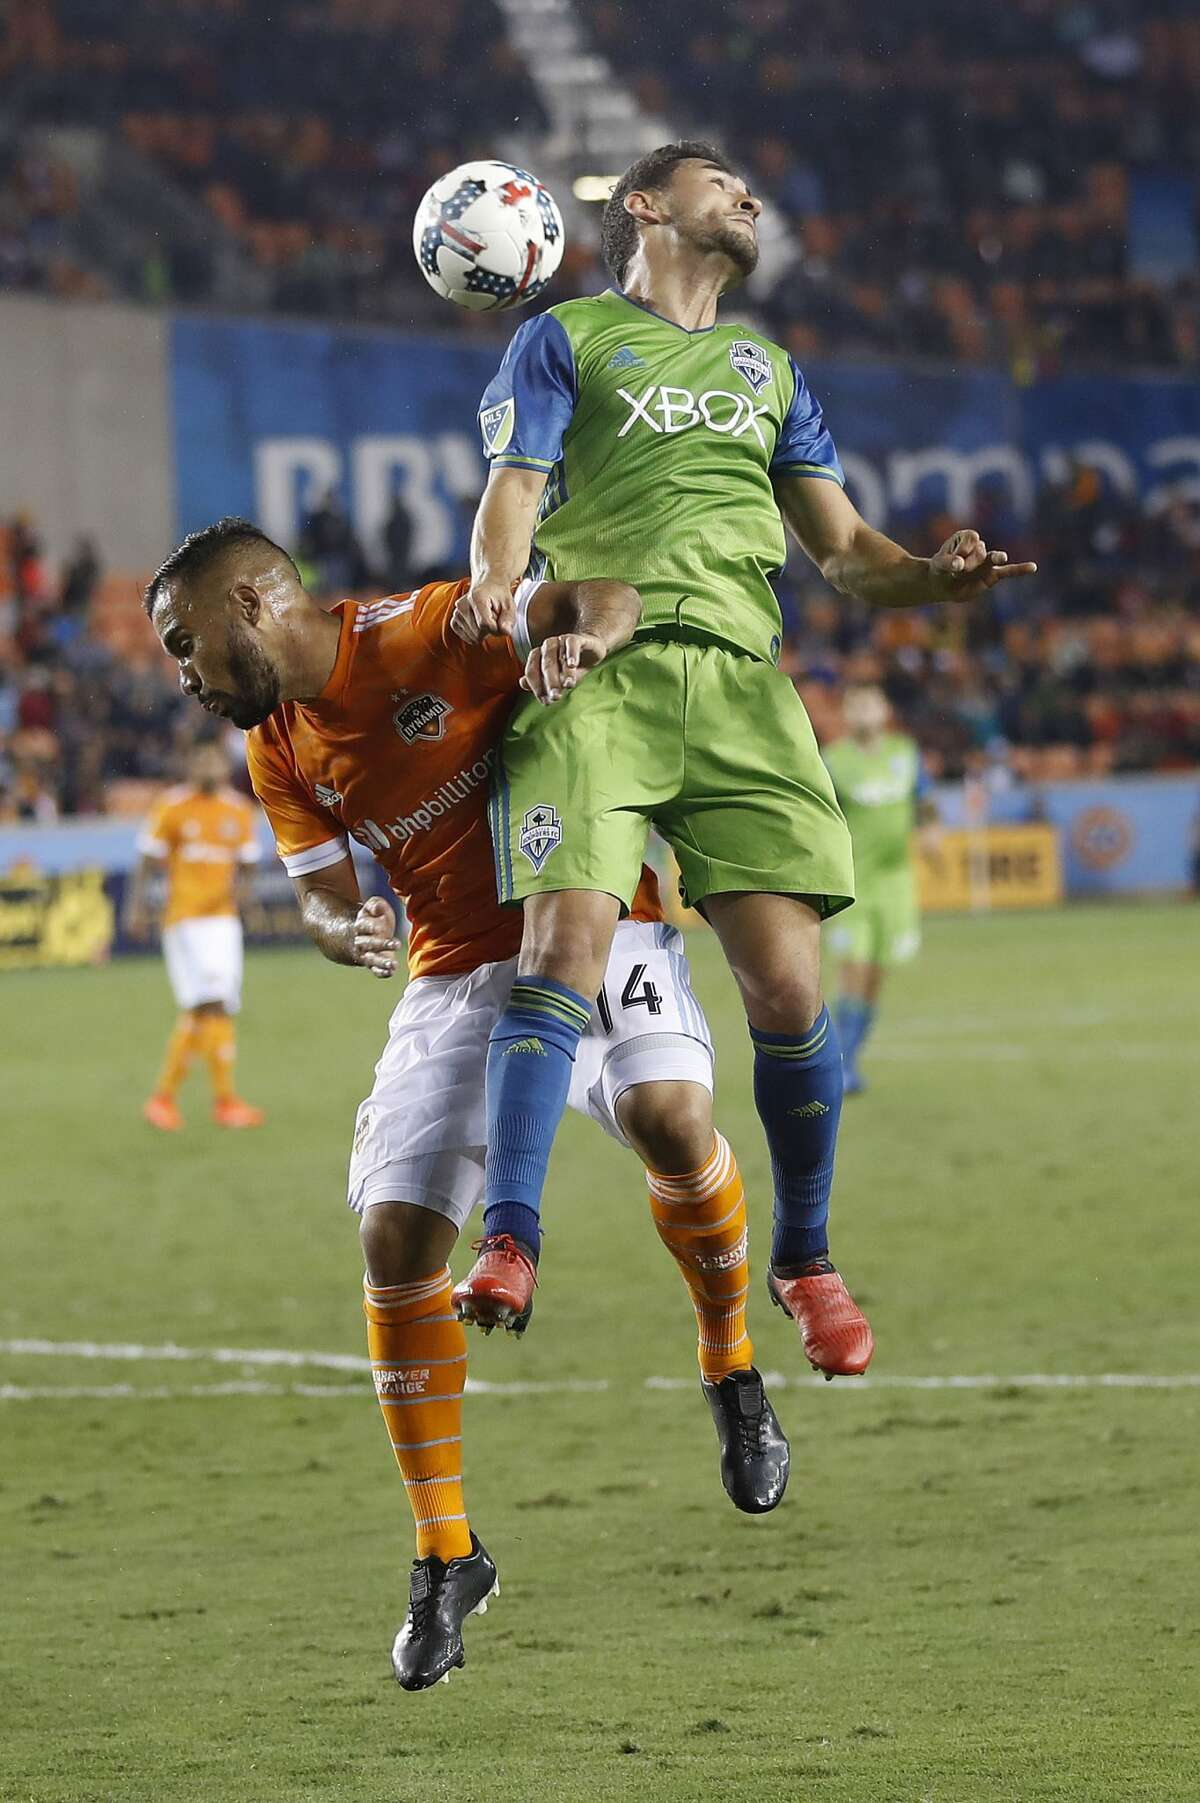 Seattle Sounders midfielder Cristian Roldan (7) and Houston Dynamo midfielder Alex (14) go up for a header during the second half of the season opening MLS soccer game at BBVA Compass stadium, Saturday, March 4, 2017, in Houston. ( Karen Warren / Houston Chronicle )